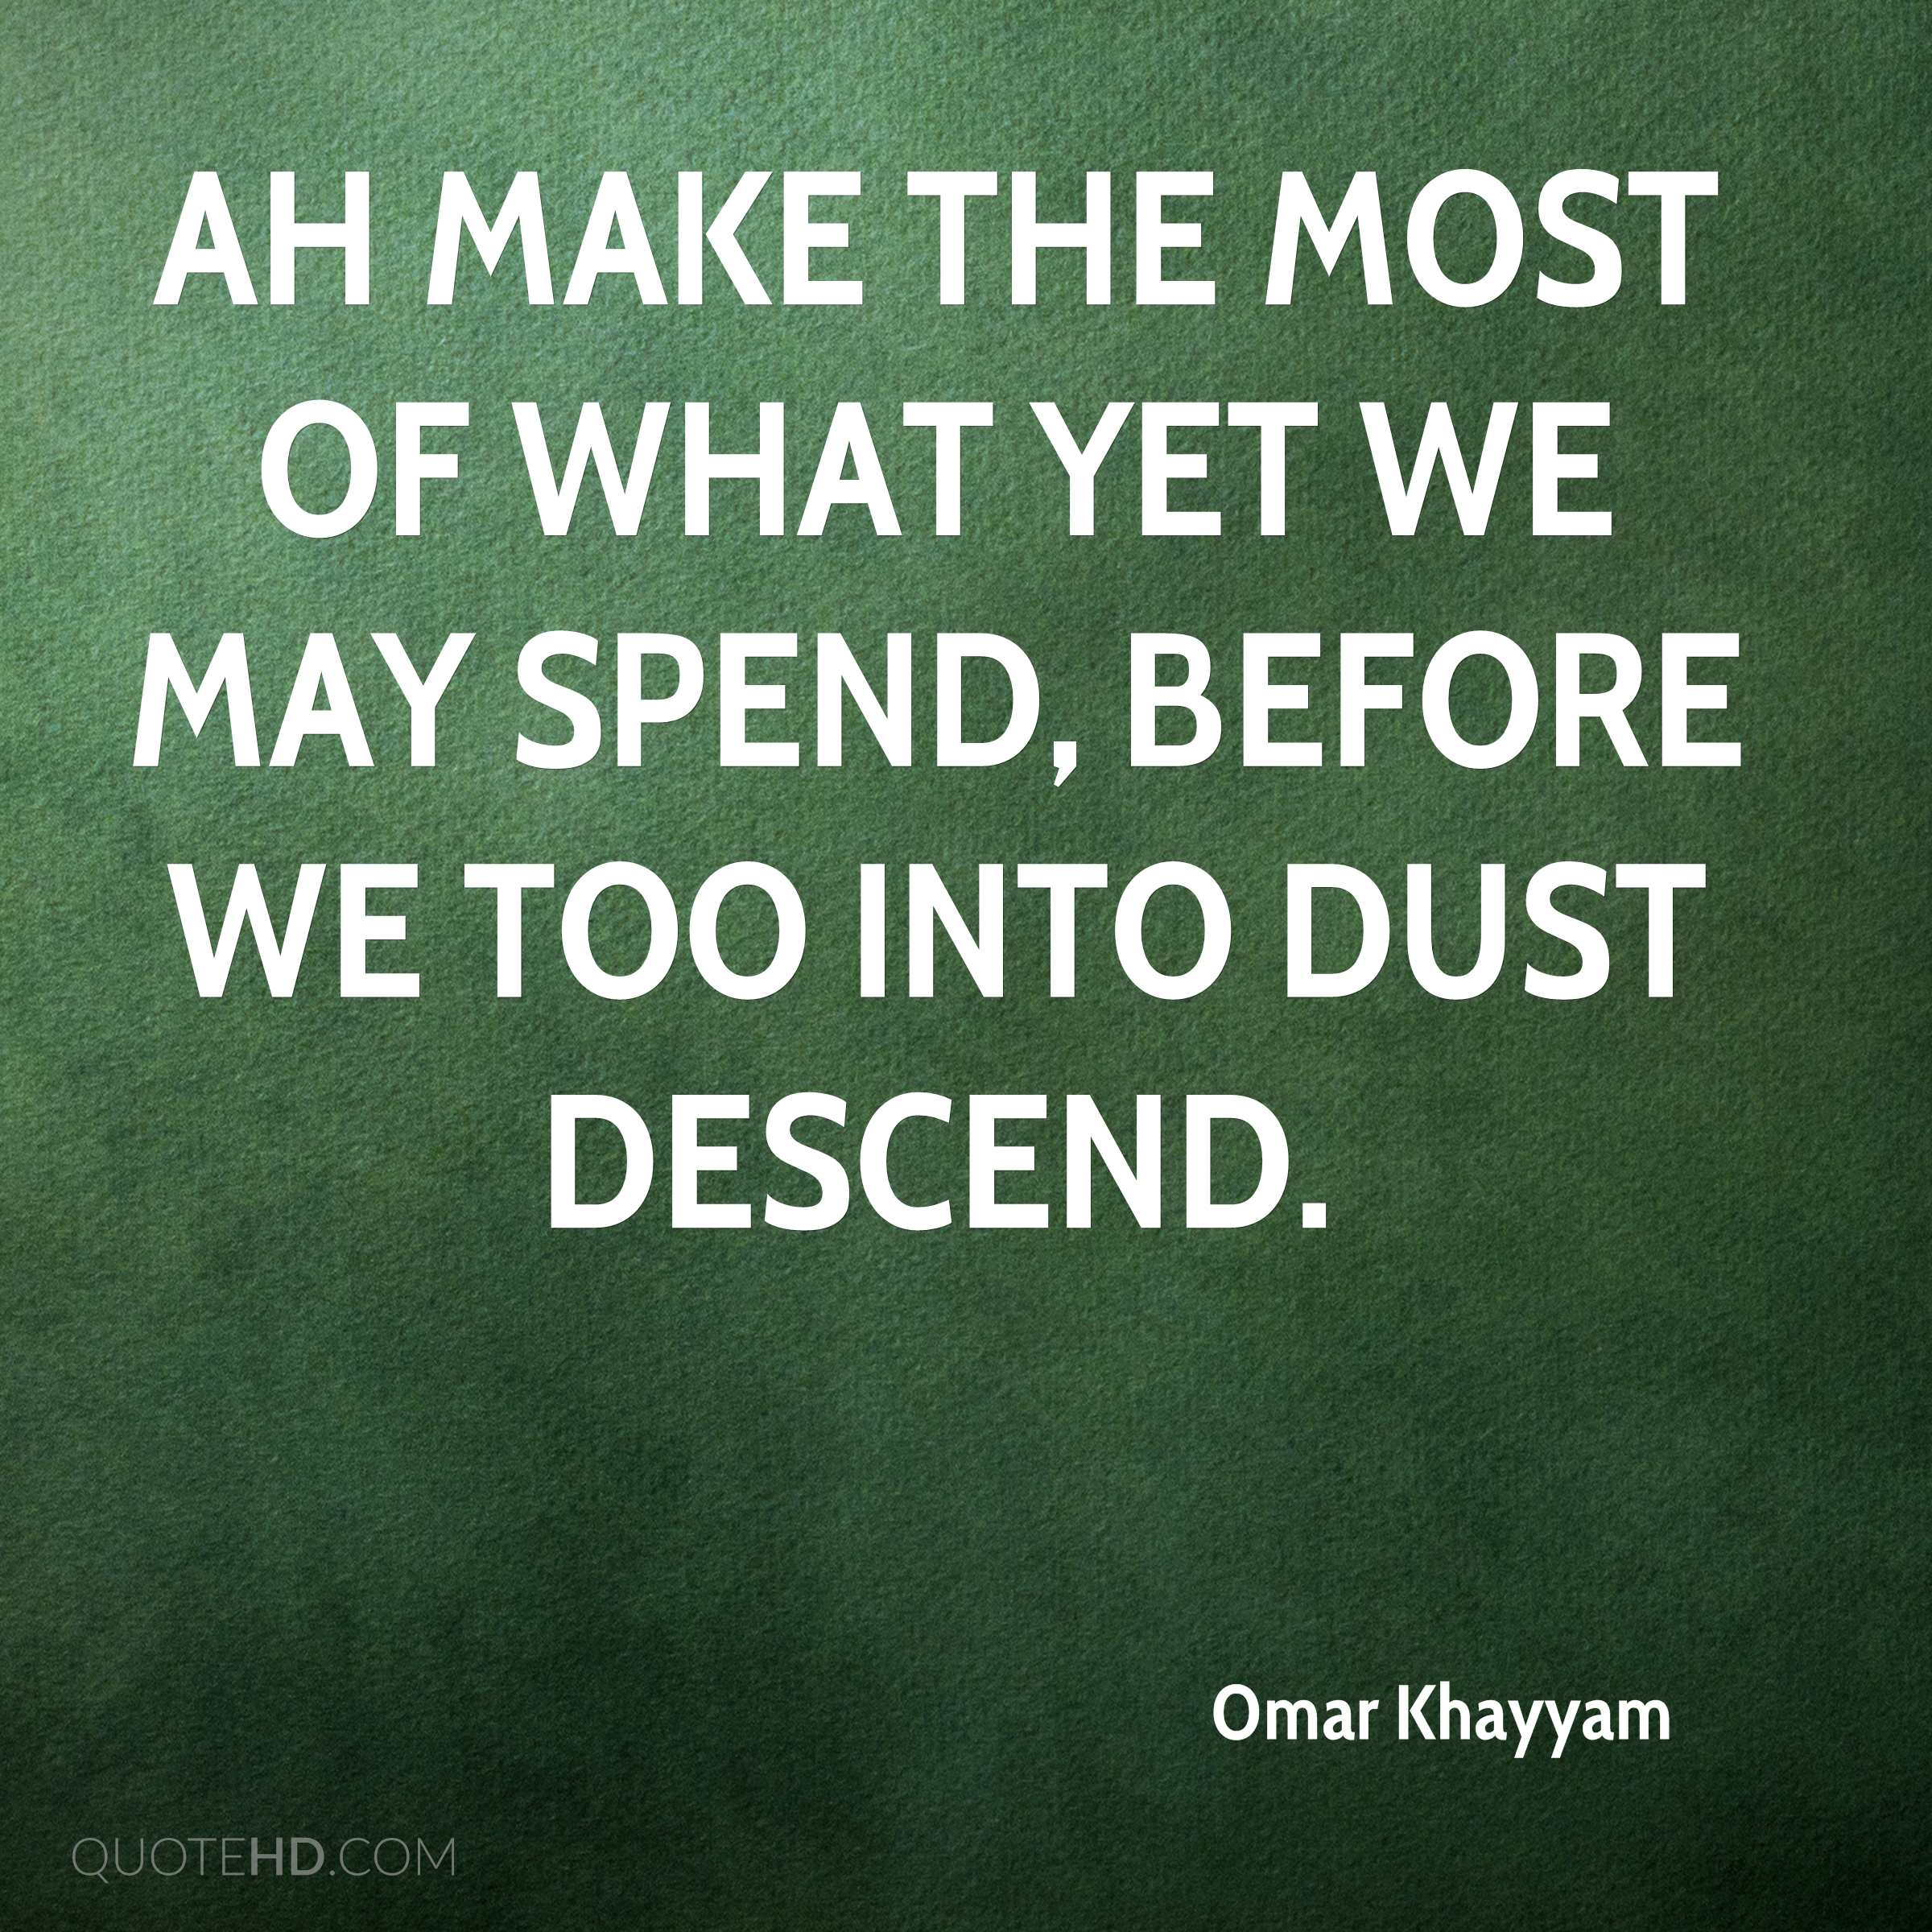 Ah make the most of what yet we may spend, Before we too into dust descend.